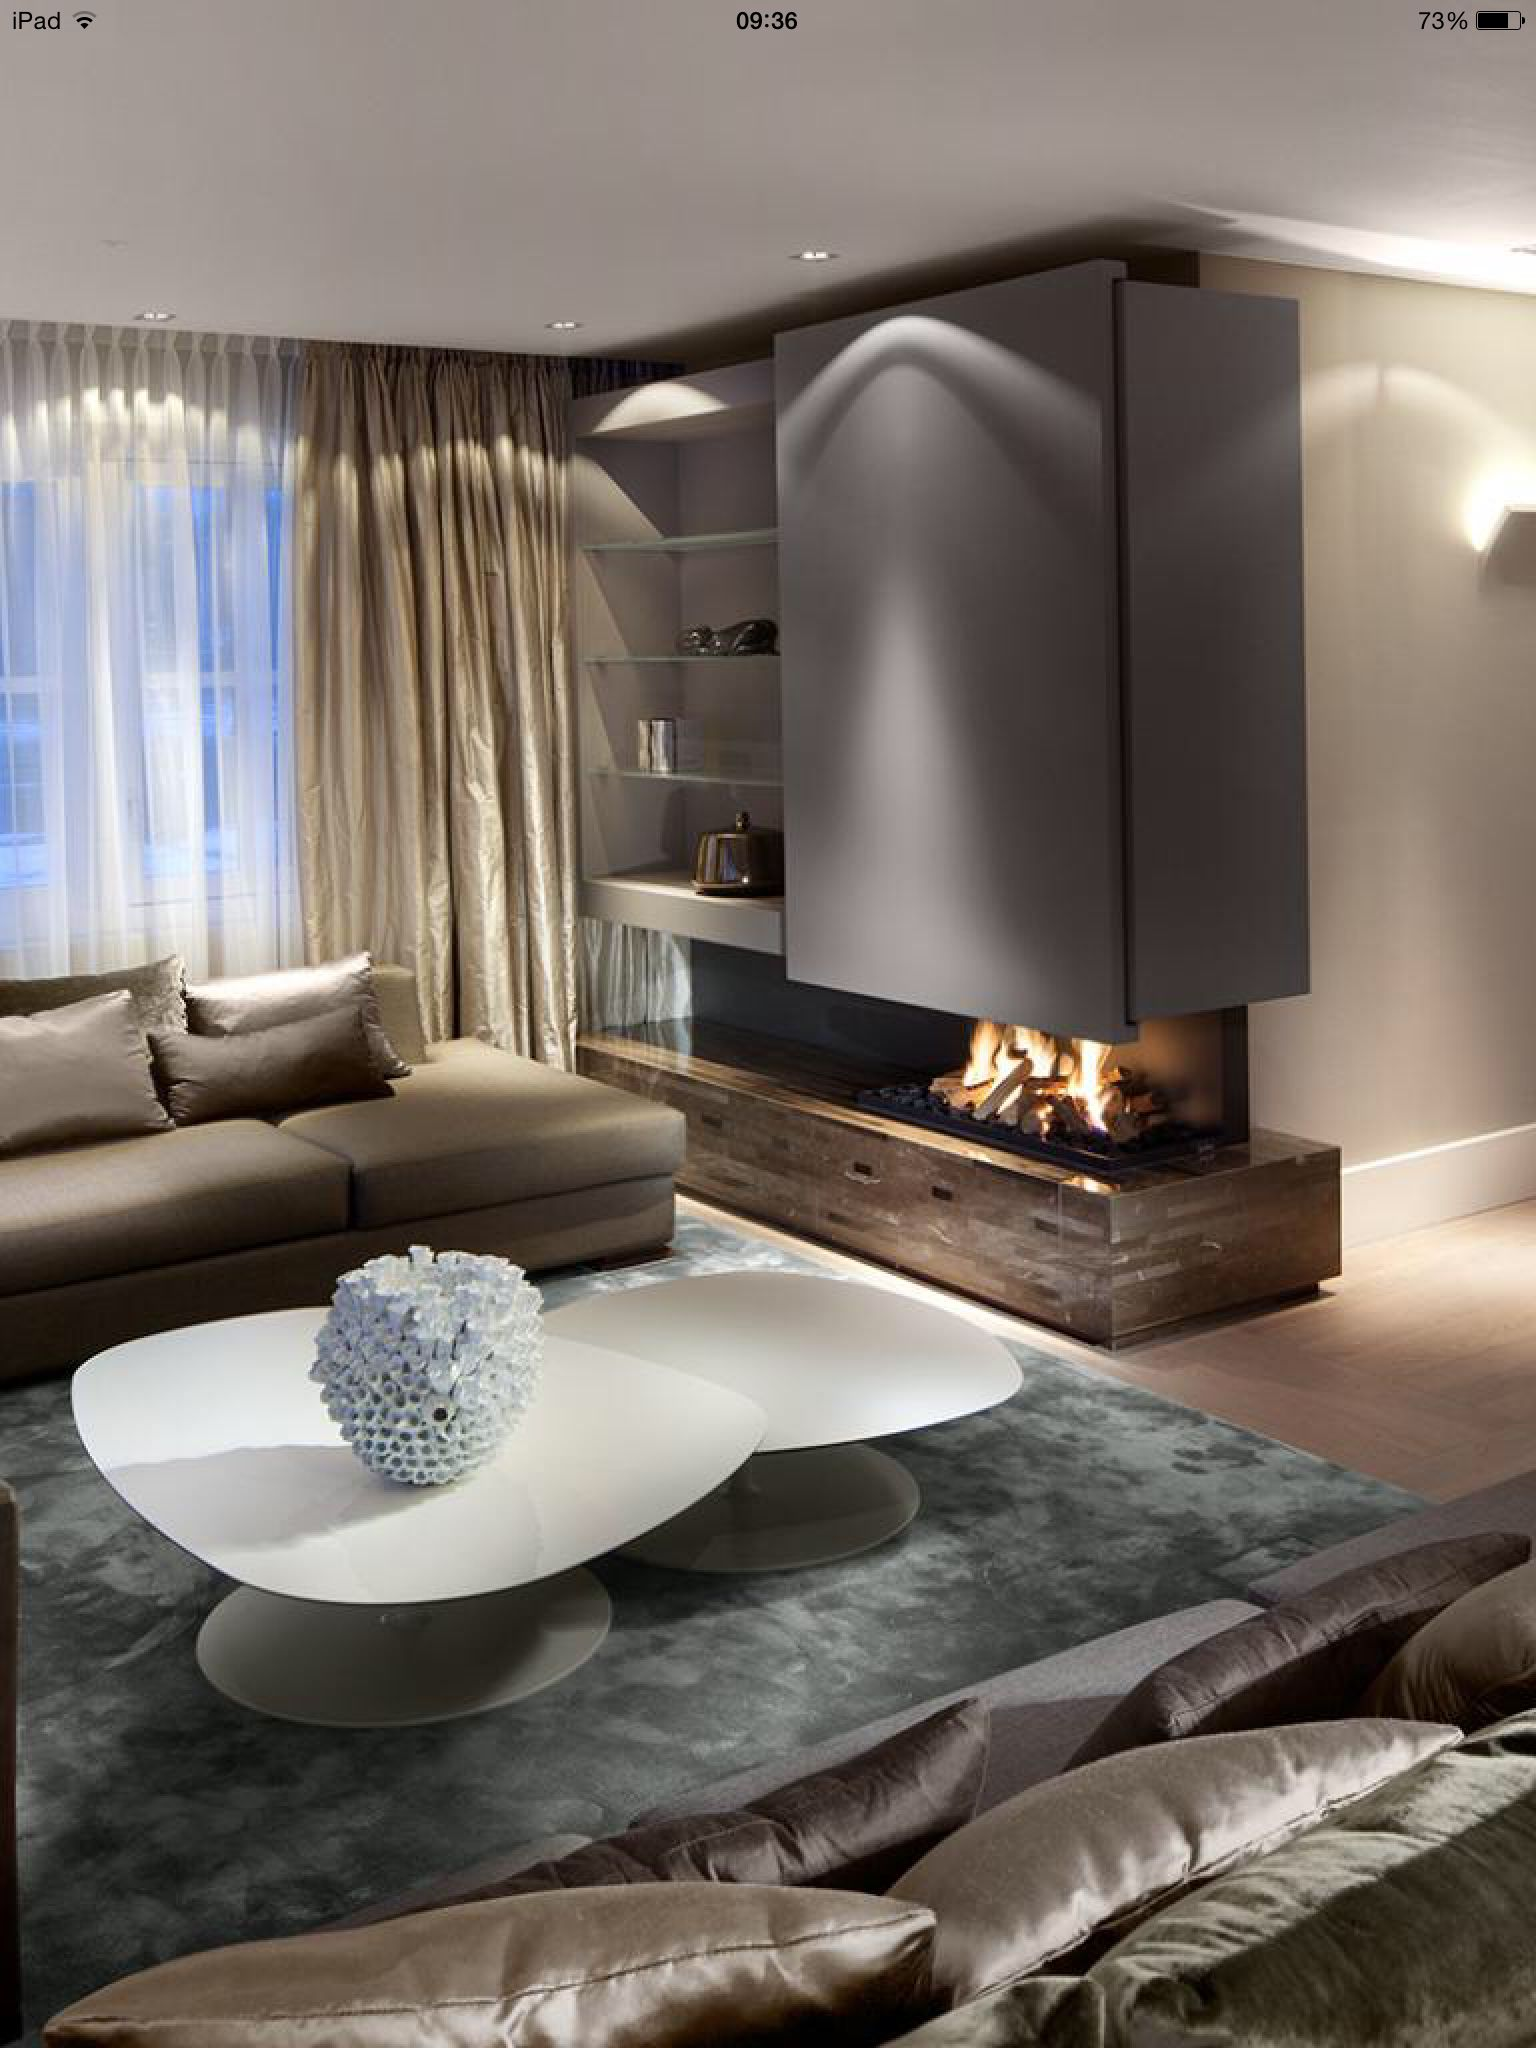 Explore Fireplace Modern, Fireplace Design, And More